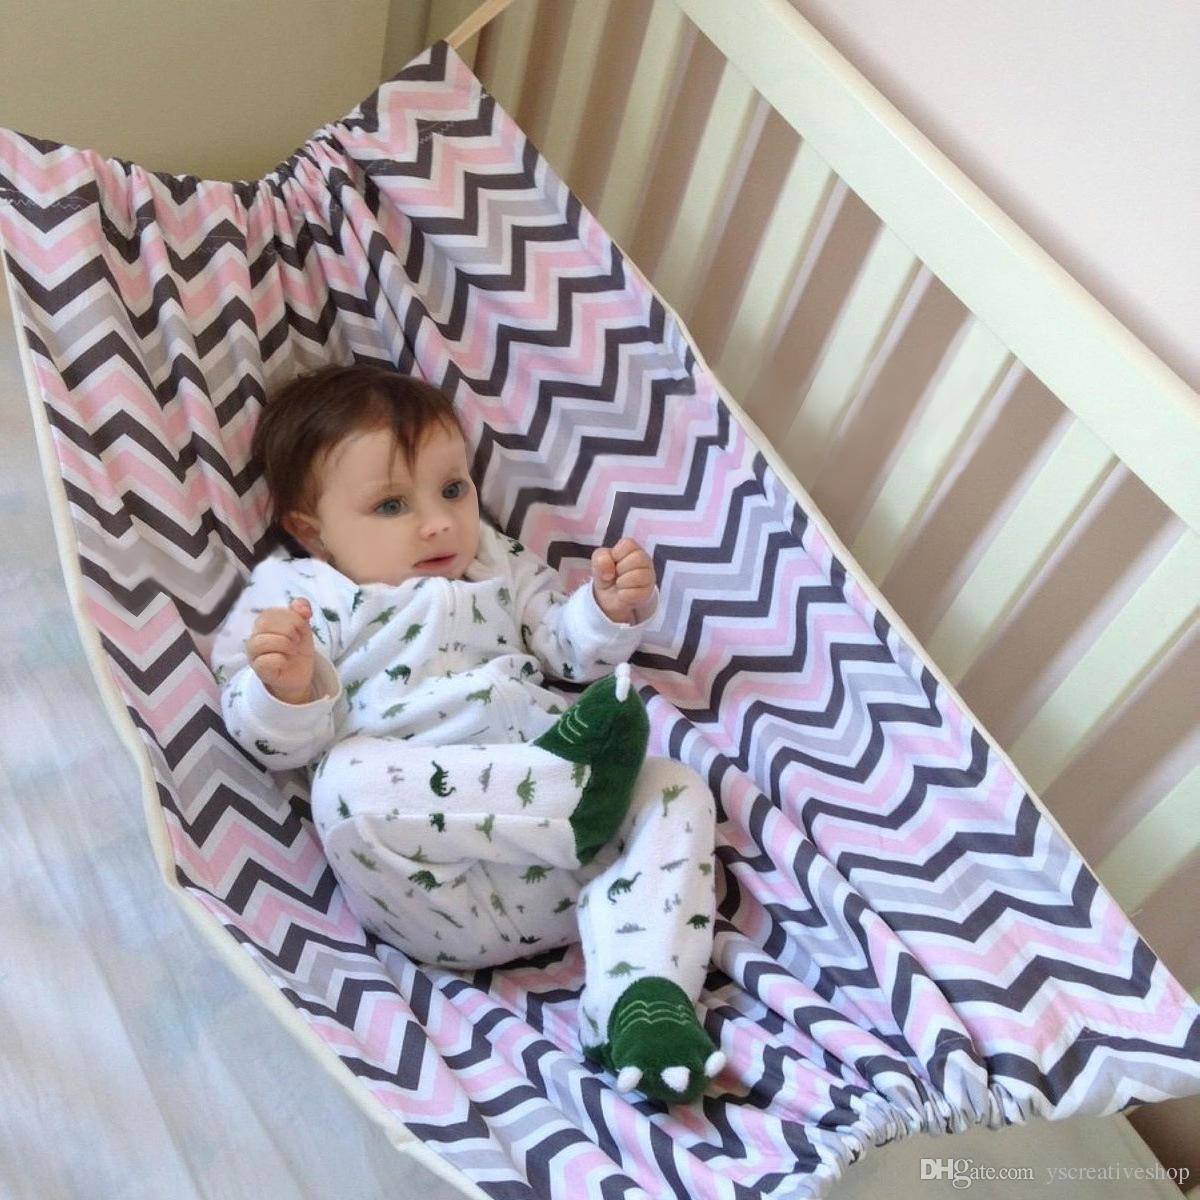 Baby Cribs baby bedroom sells baby hammocks and removable portable bed kits for European and American families